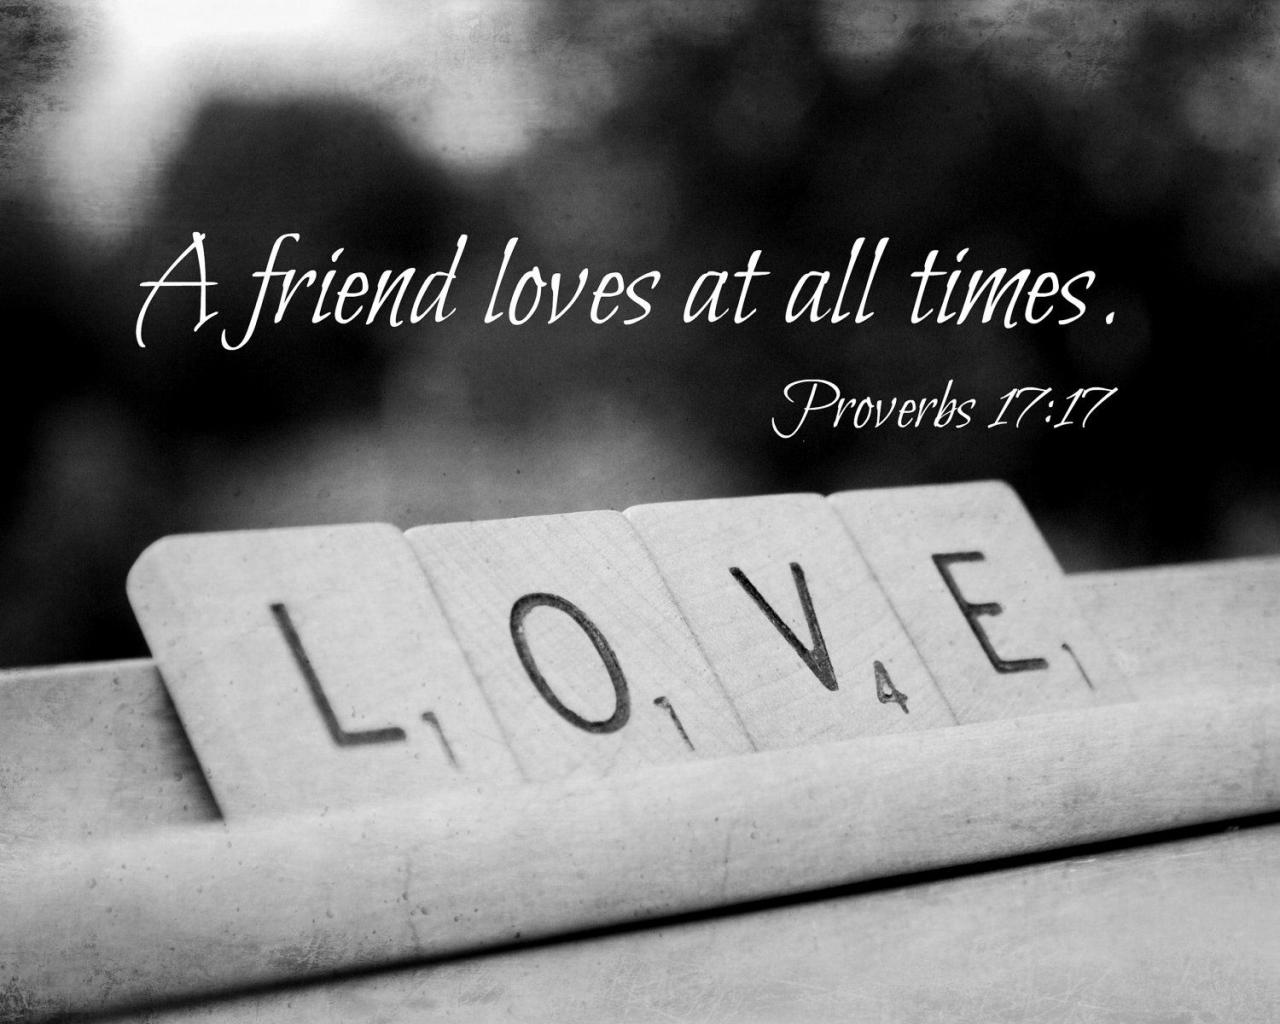 Friendship Quote Proverbs  Scripture Art Scrabble Love Print Friend Loves All Times Christian Decor Gift Bible Verse Valentines Day